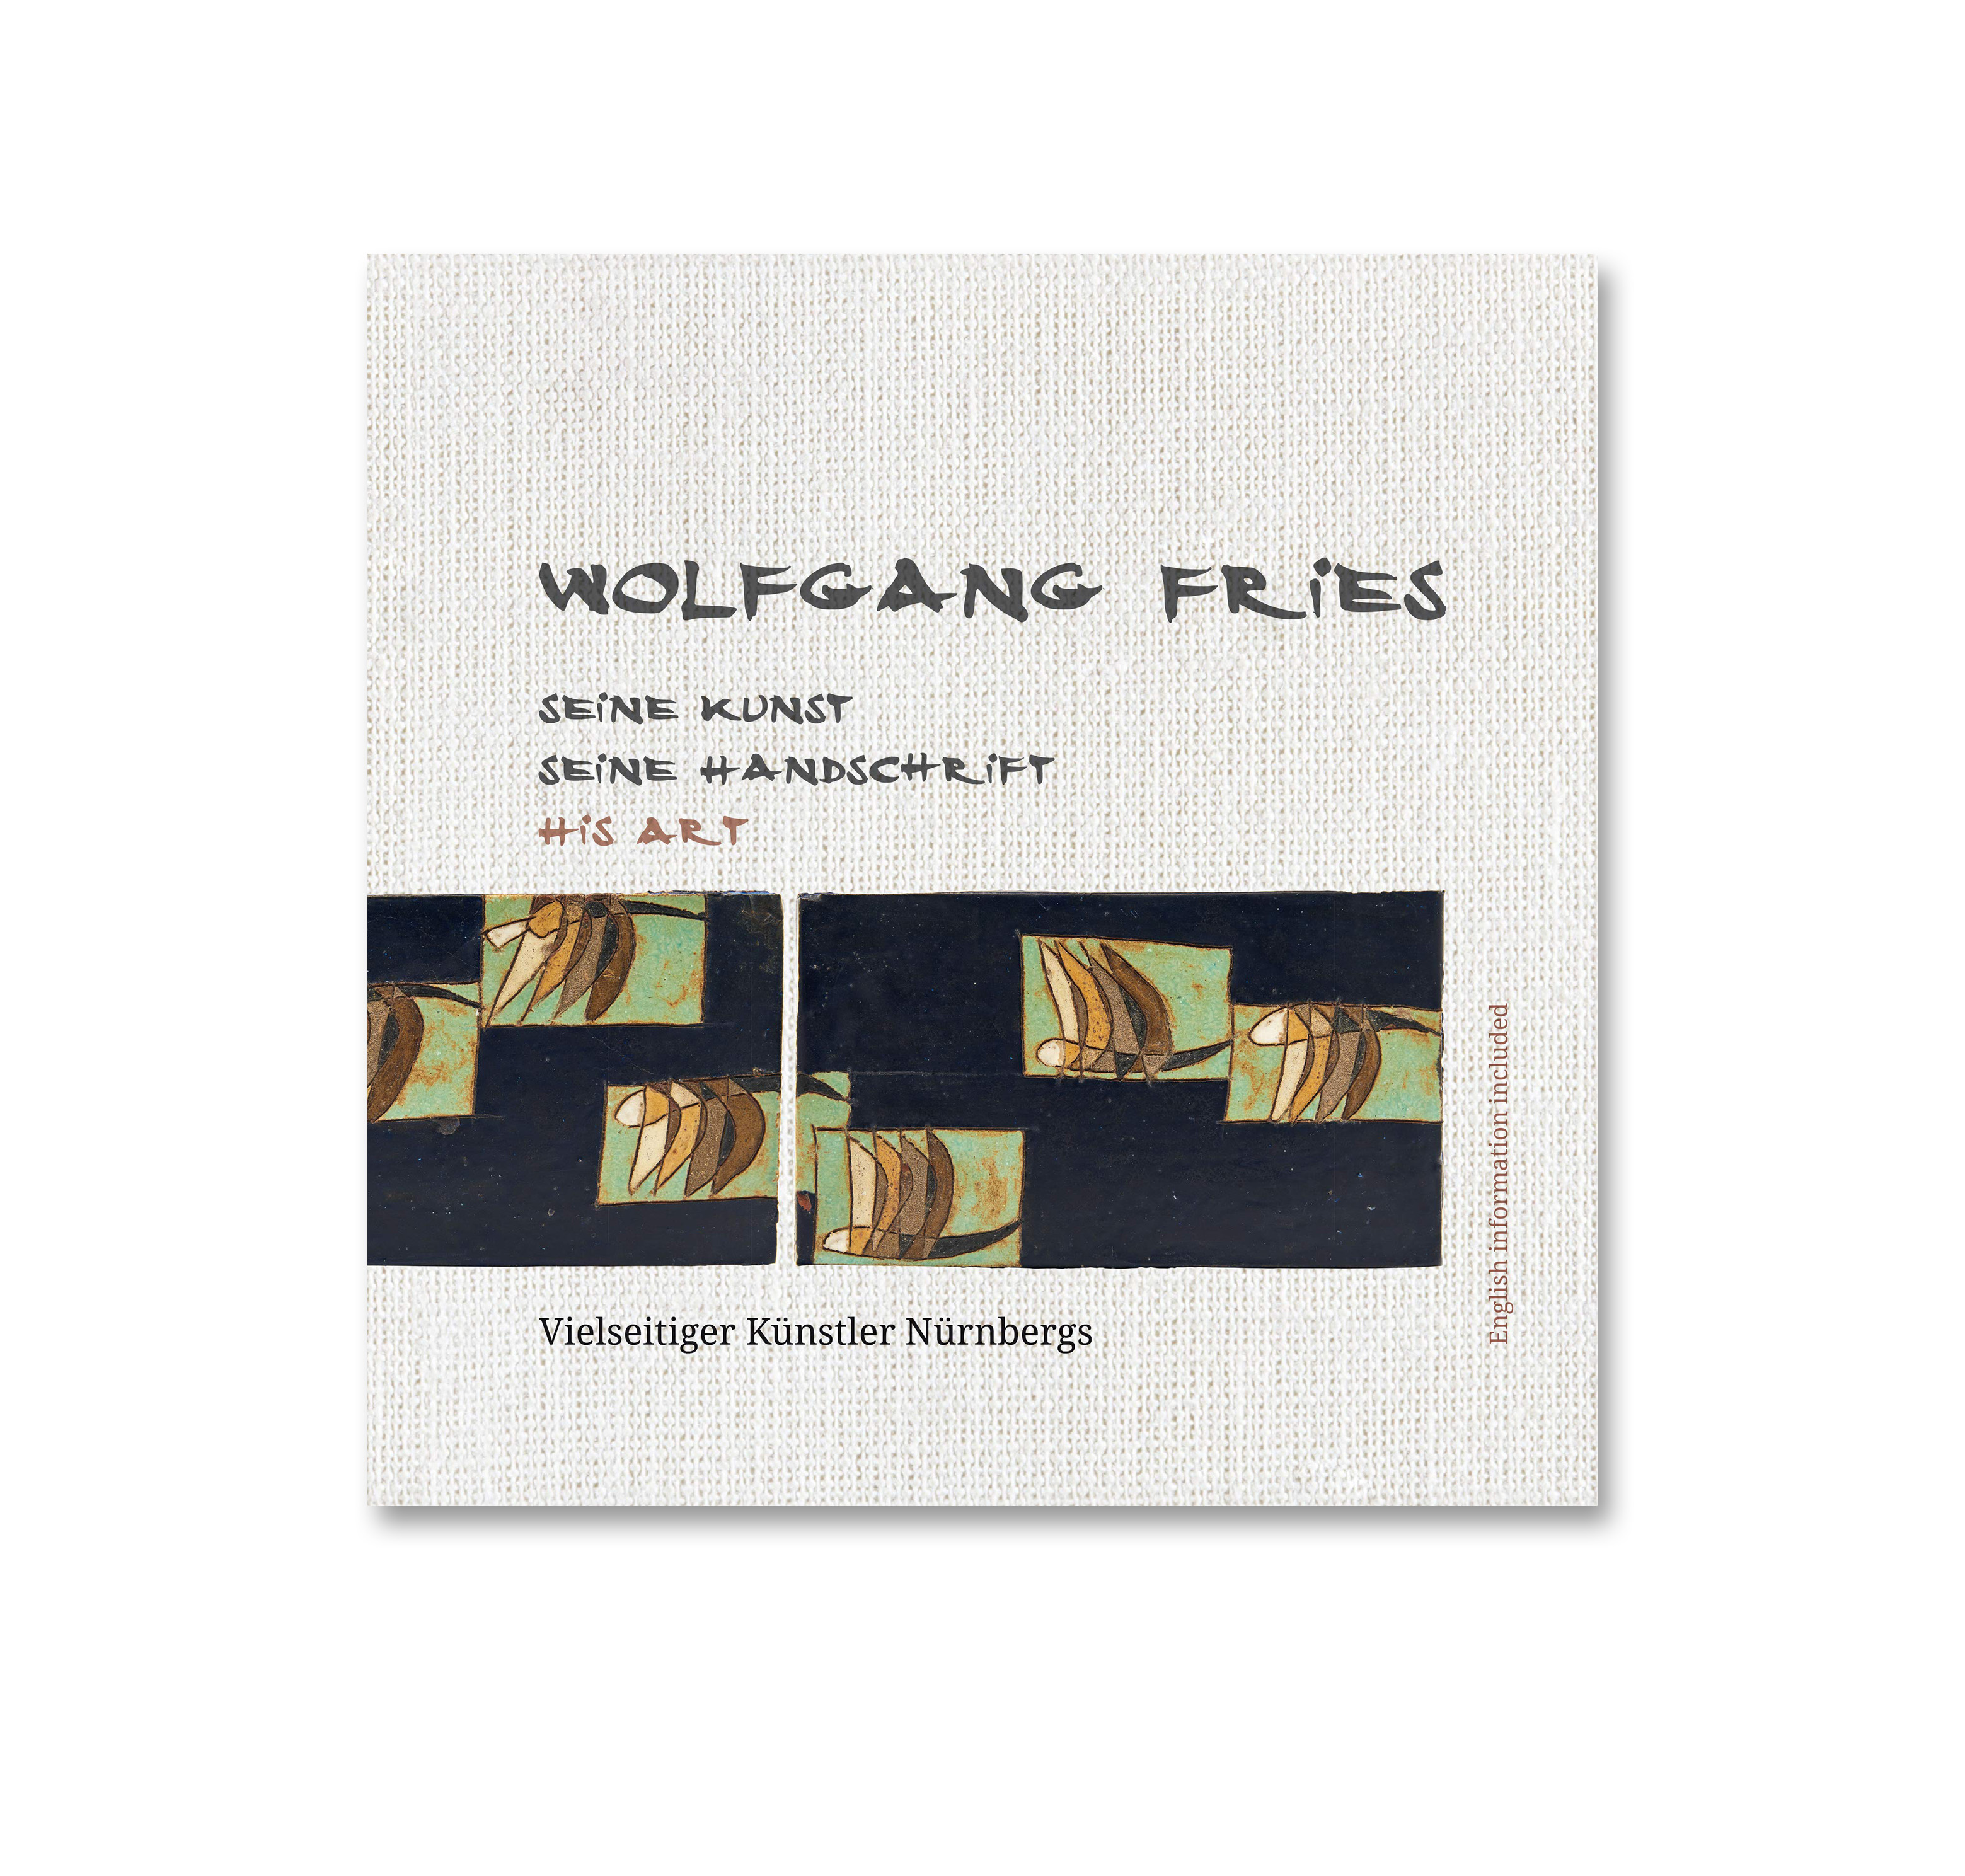 Wolfgang Fries